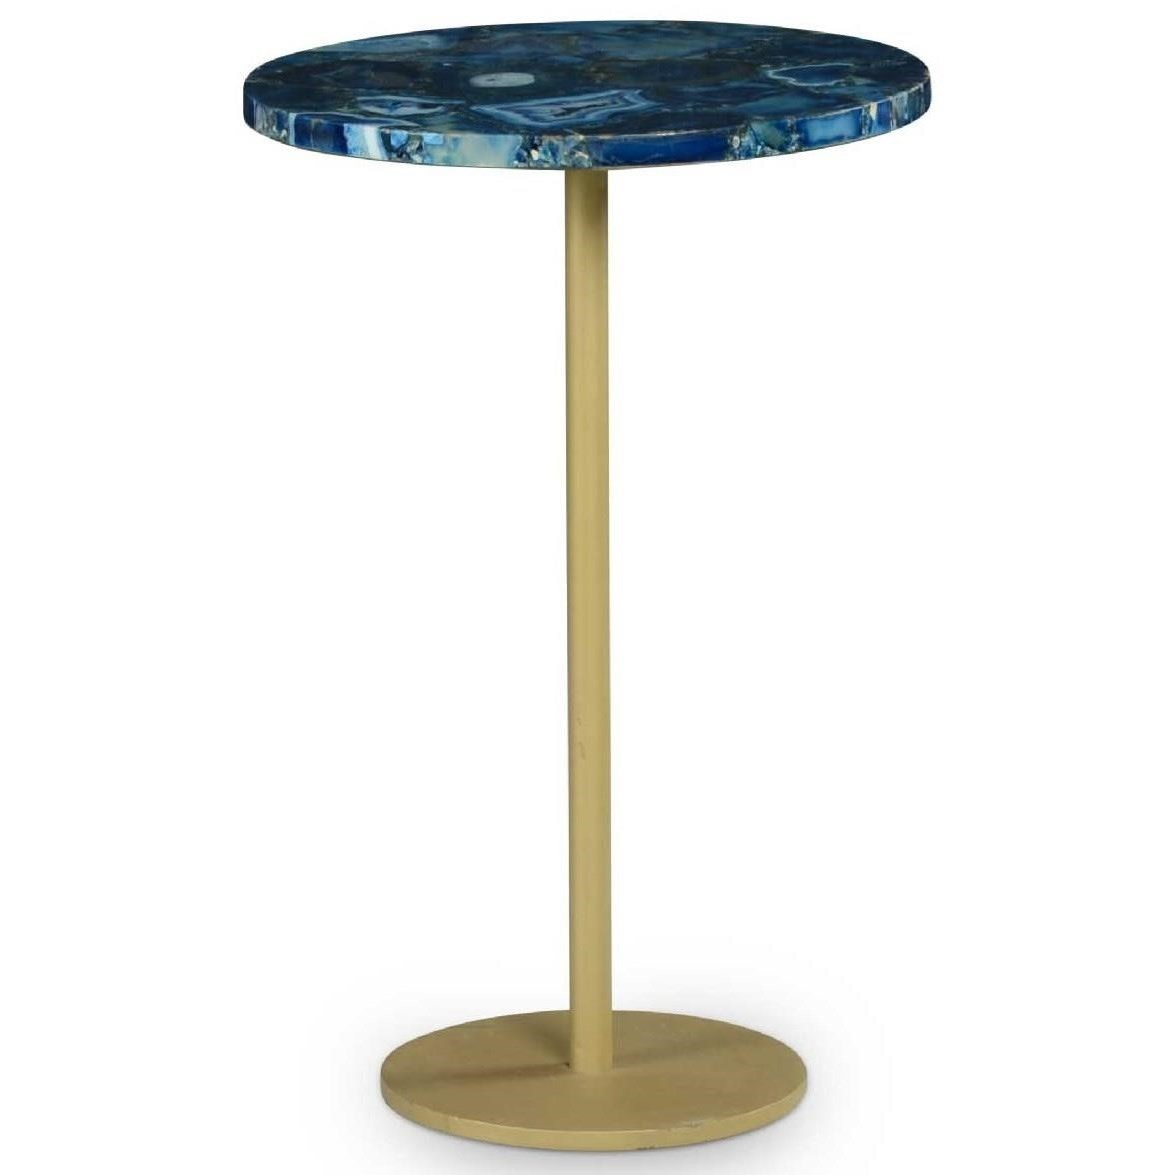 Oceana Agate Top Side Table by Steve Silver at Standard Furniture